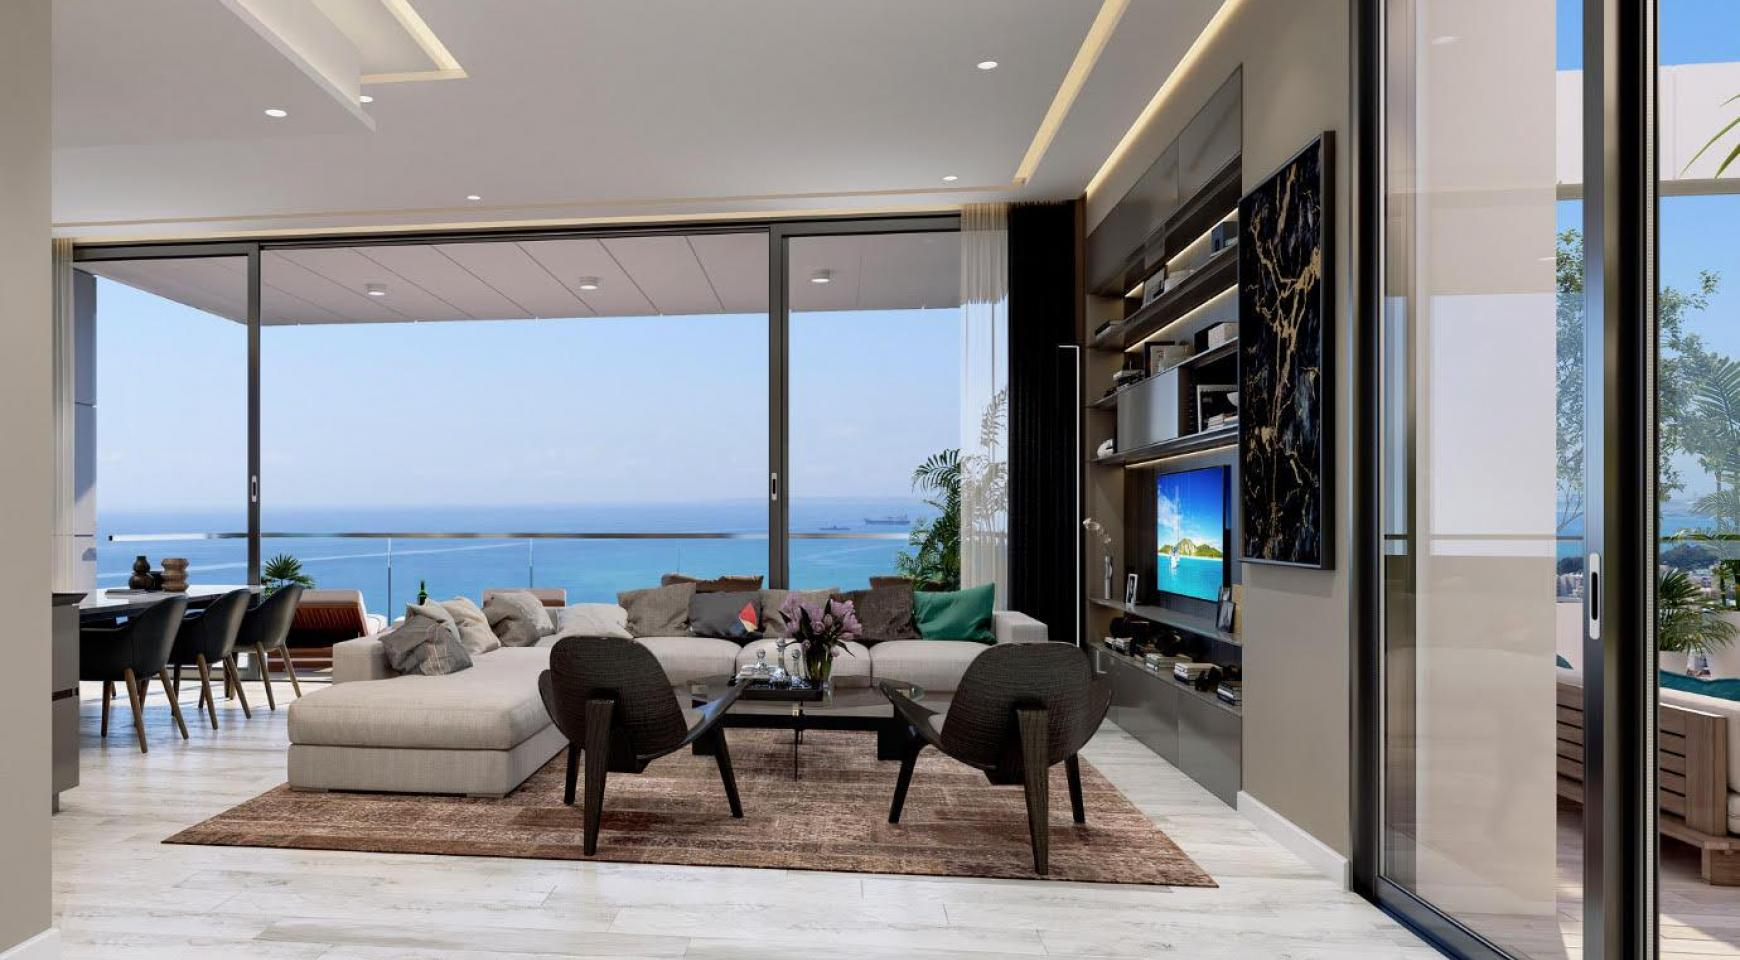 Contemporary 2 Bedroom Apartment with Sea Views in a Luxurious Complex - 2